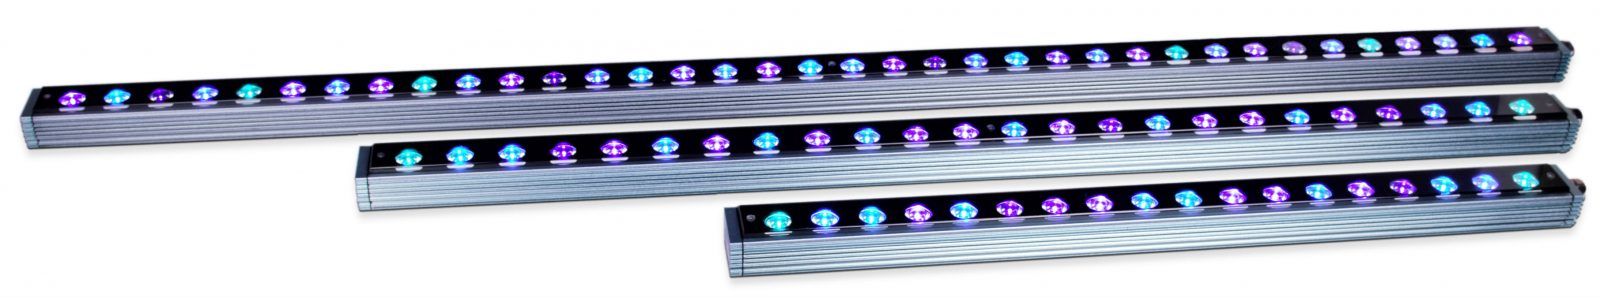 OR3 Reef Aquarium LED Bars